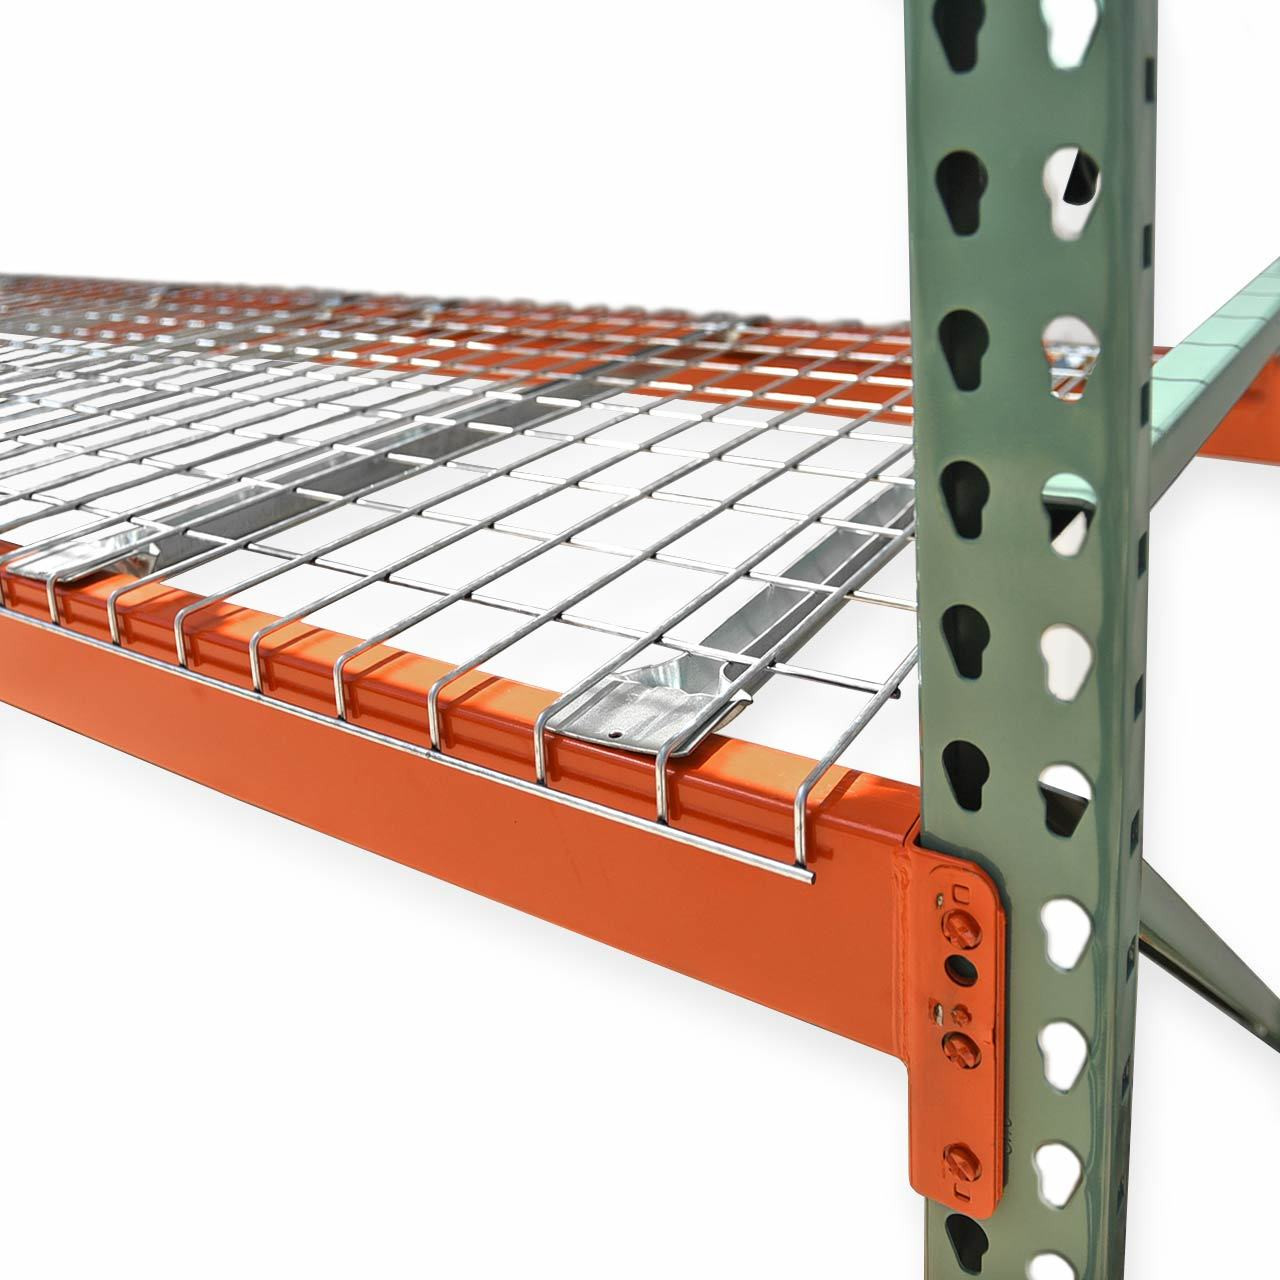 Pallet racking with wire decks close up